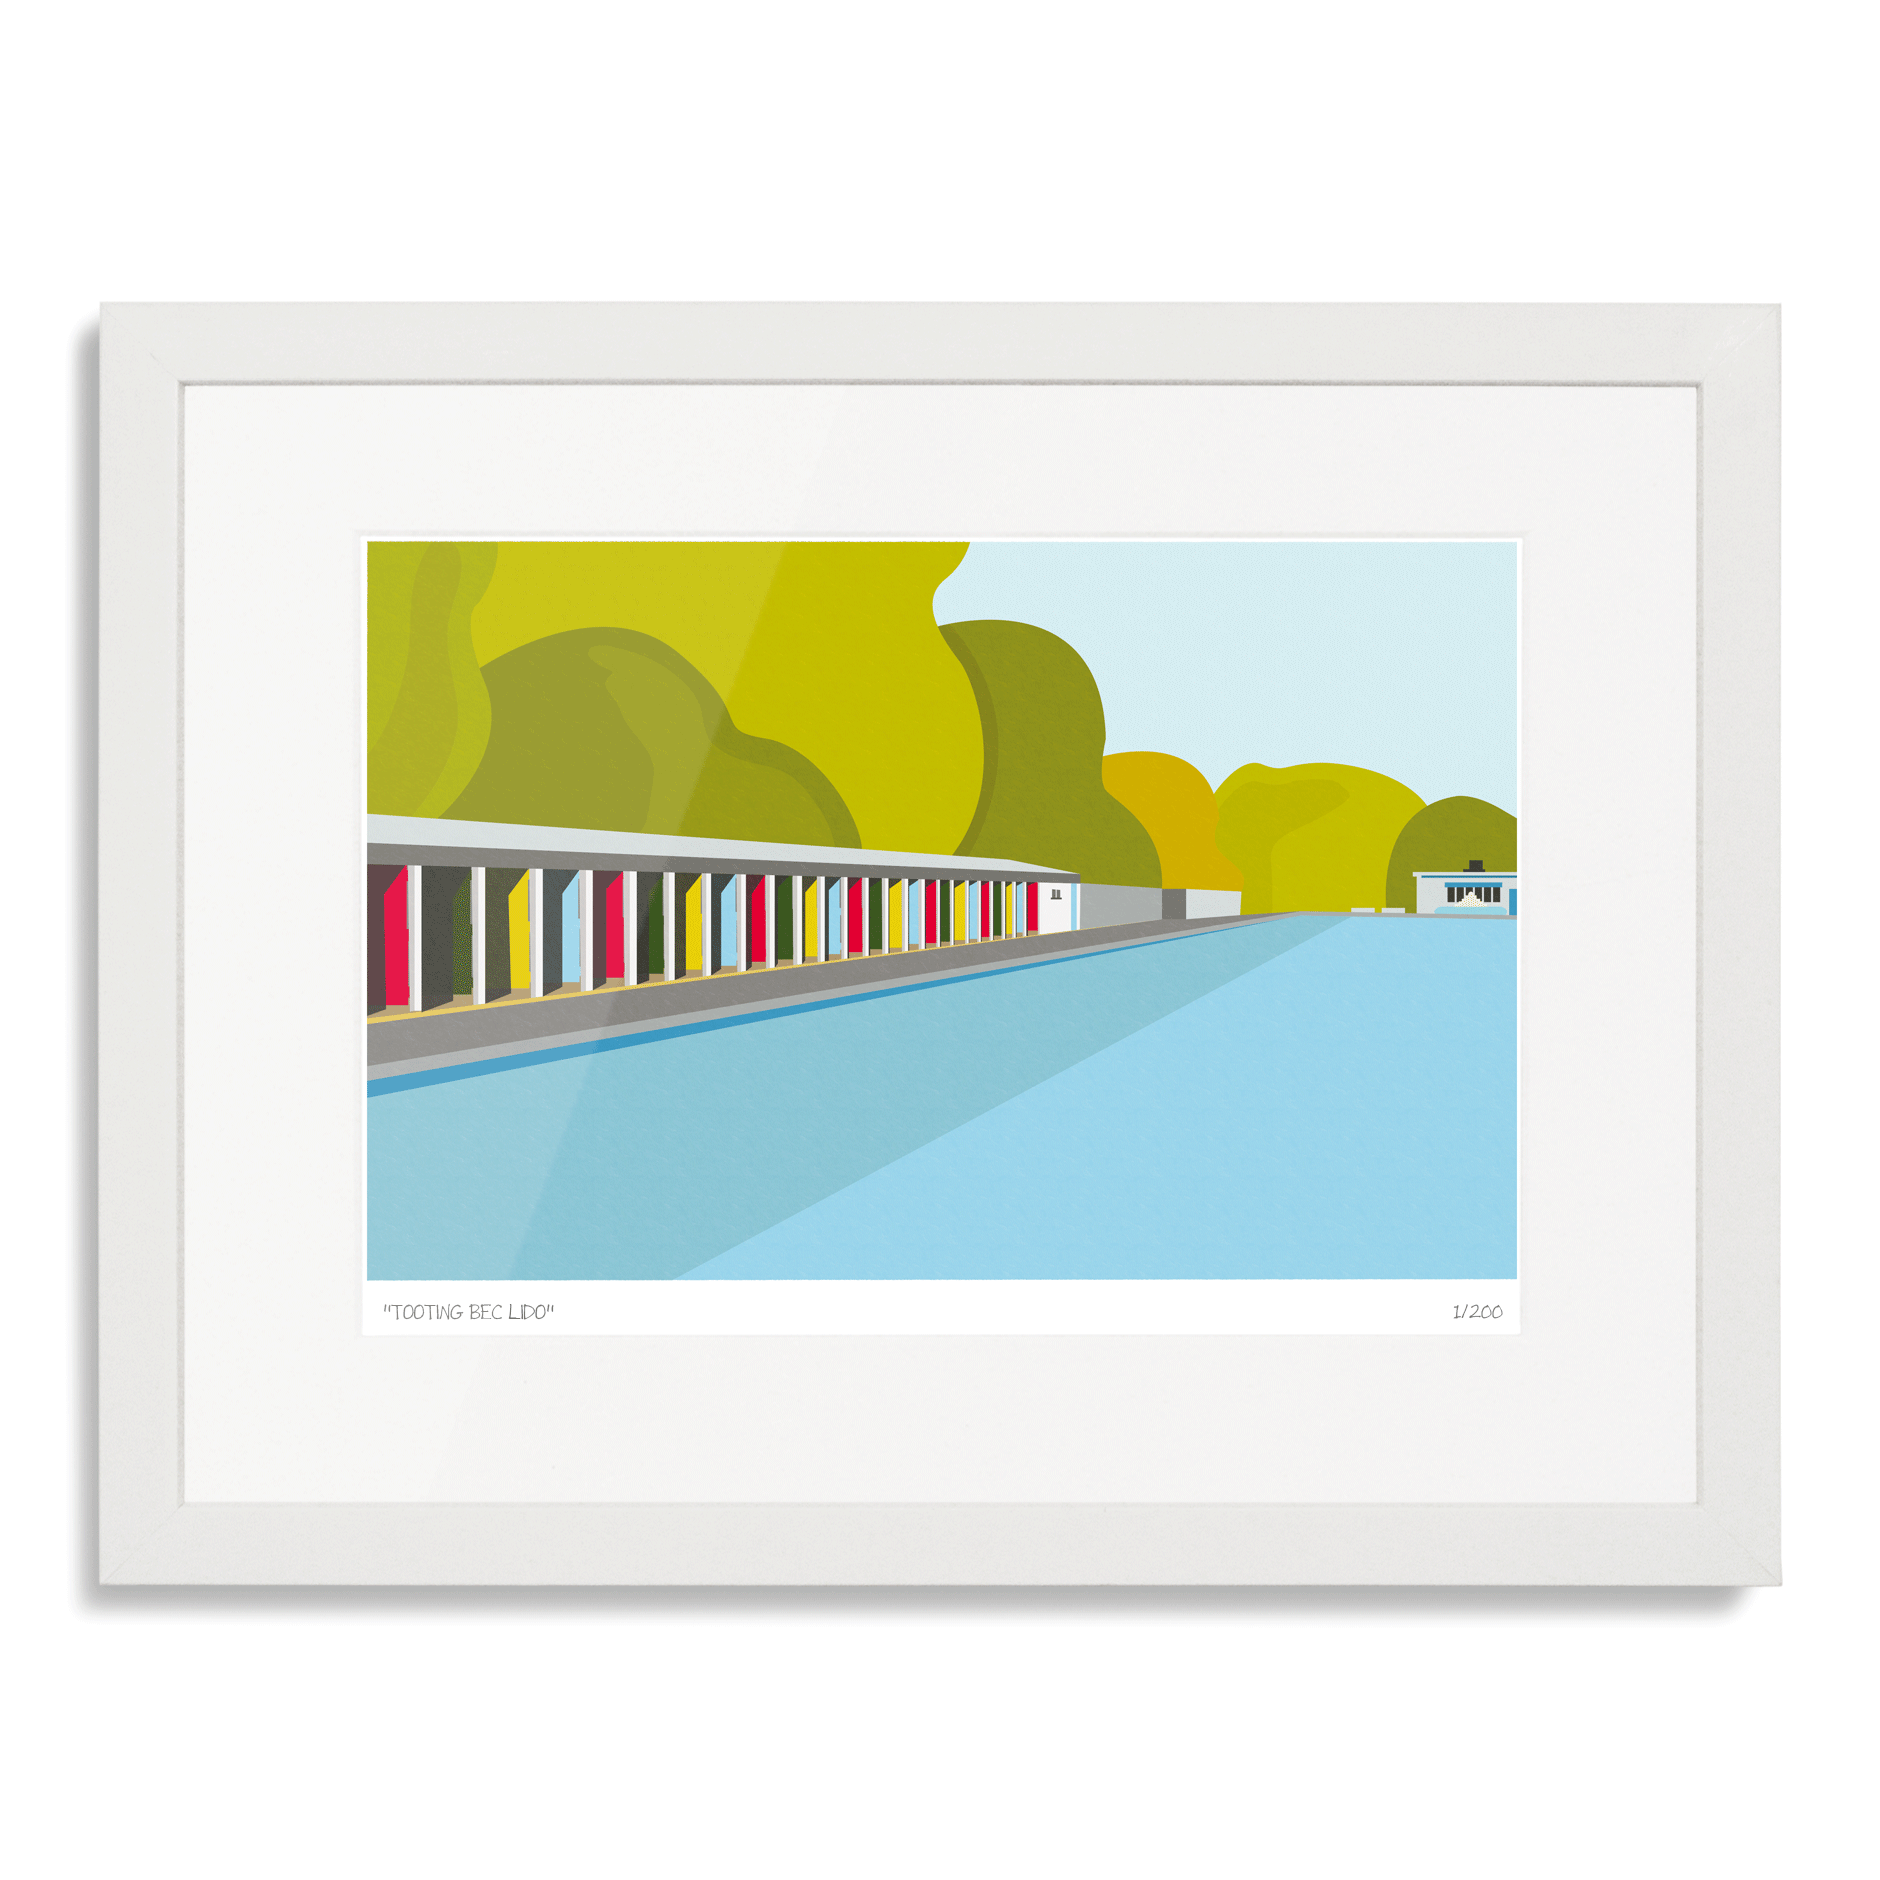 Tooting Bec Lido Limited Edition Gicl E Art Print London Art Prints Limited Edition